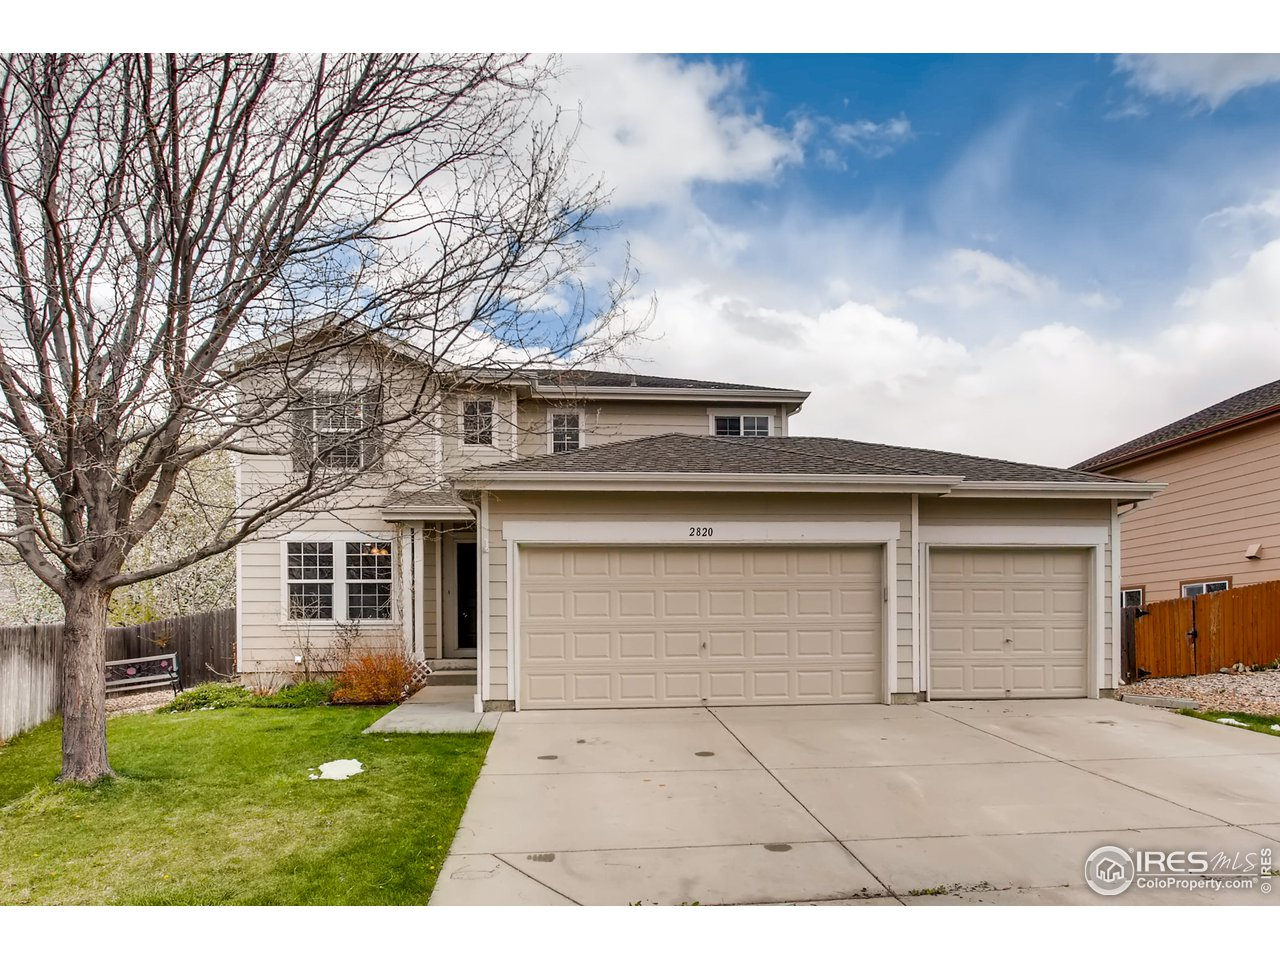 2820 Longboat Way, Fort Collins CO 80524